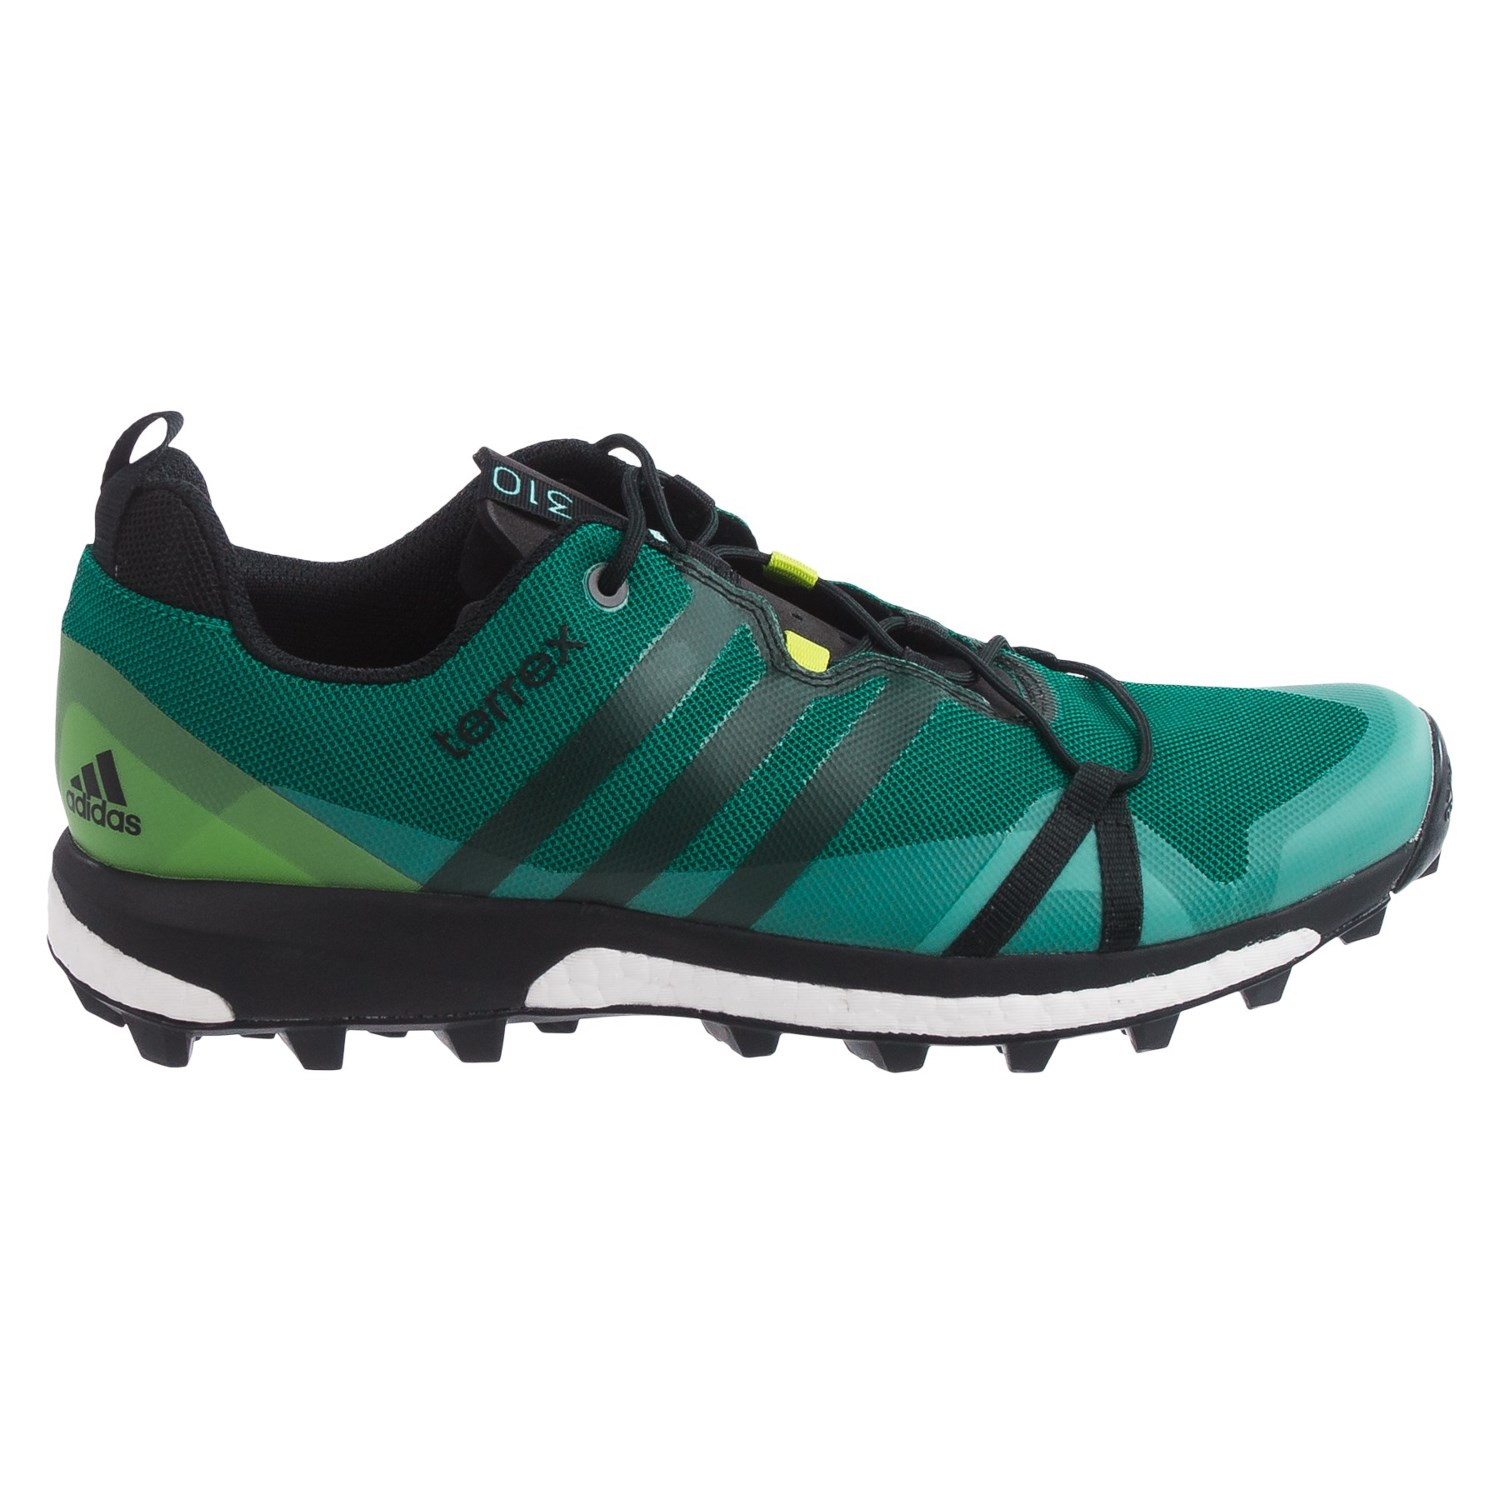 adidas Terrex Agravic Trail Running Shoes (For Men) - Save 44%